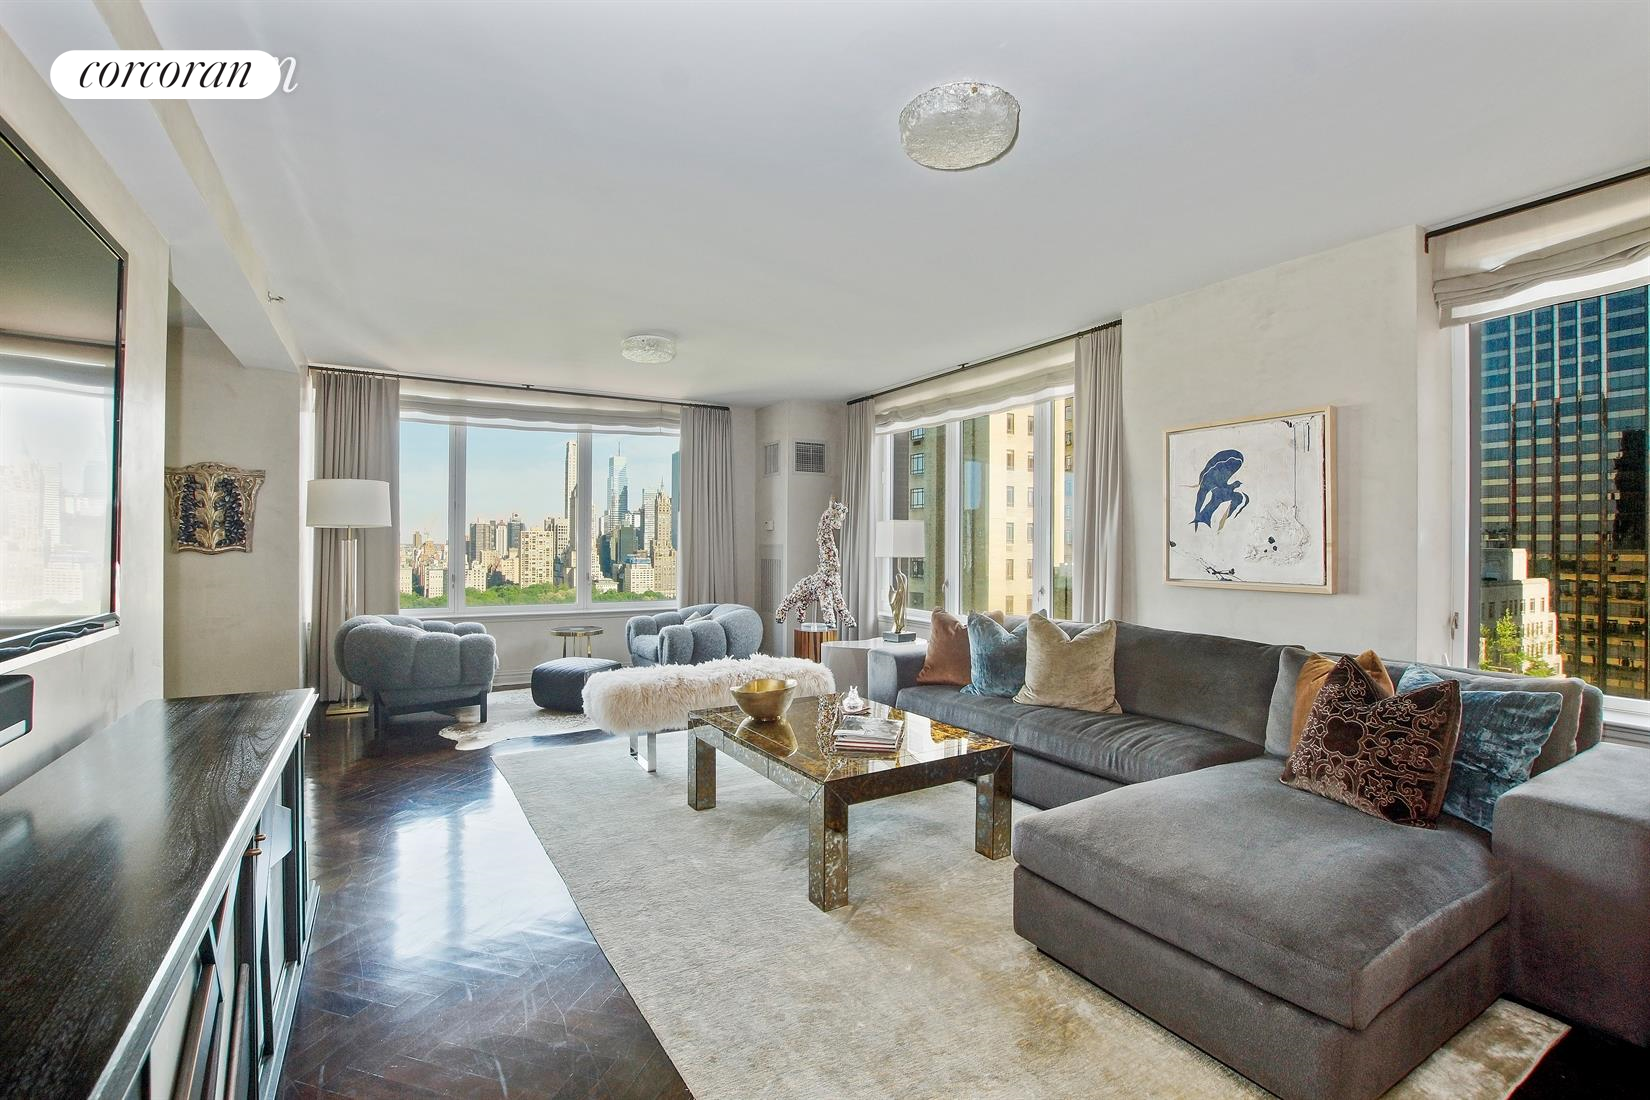 Breathtaking views of Central Park views from this 4 bedroom/4.5 bath home at the Park Laurel.  Entering into an elegant gallery, this stunning and spacious home is sun-drenched with eastern, southern, and northern exposures. The corner living room and dining room are ideal for entertaining.  The floors are handsomely stained dark herringbone, the living room, dining room, and gallery walls are enhanced with Venetian plaster walls.  The eat-in kitchen is well equipped with high end kitchen appliances including Subzero refrigerator, Thermador oven and range, Miele dishwasher, and large pantry adjacent to the kitchen, and powder room.  The master suite features central park views, outfitted closets, and en-suite bath with separate shower. The additional 3 bedrooms all have en-suite baths.  Additional enhancements include Sonos wireless sound in the living room, dining room, and master bedroom. The Park Laurel is a full service, doorman/concierge condominium with fitness room, garage, bike room, playroom.